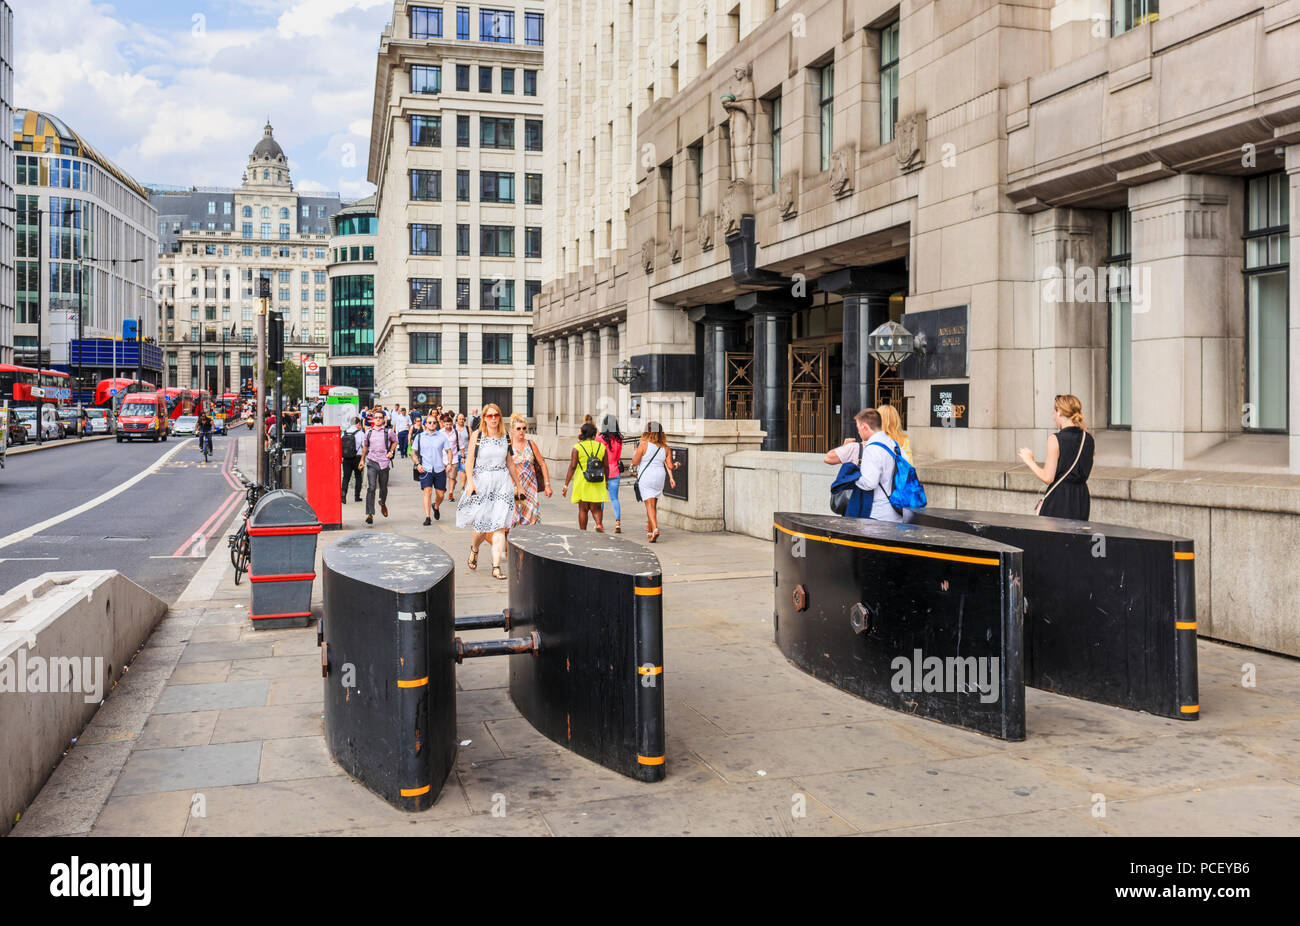 Counter-terrorism measures in the City of London: anti-vehicle bollards and barriers by Adelaide House on London Bridge in the financial district - Stock Image